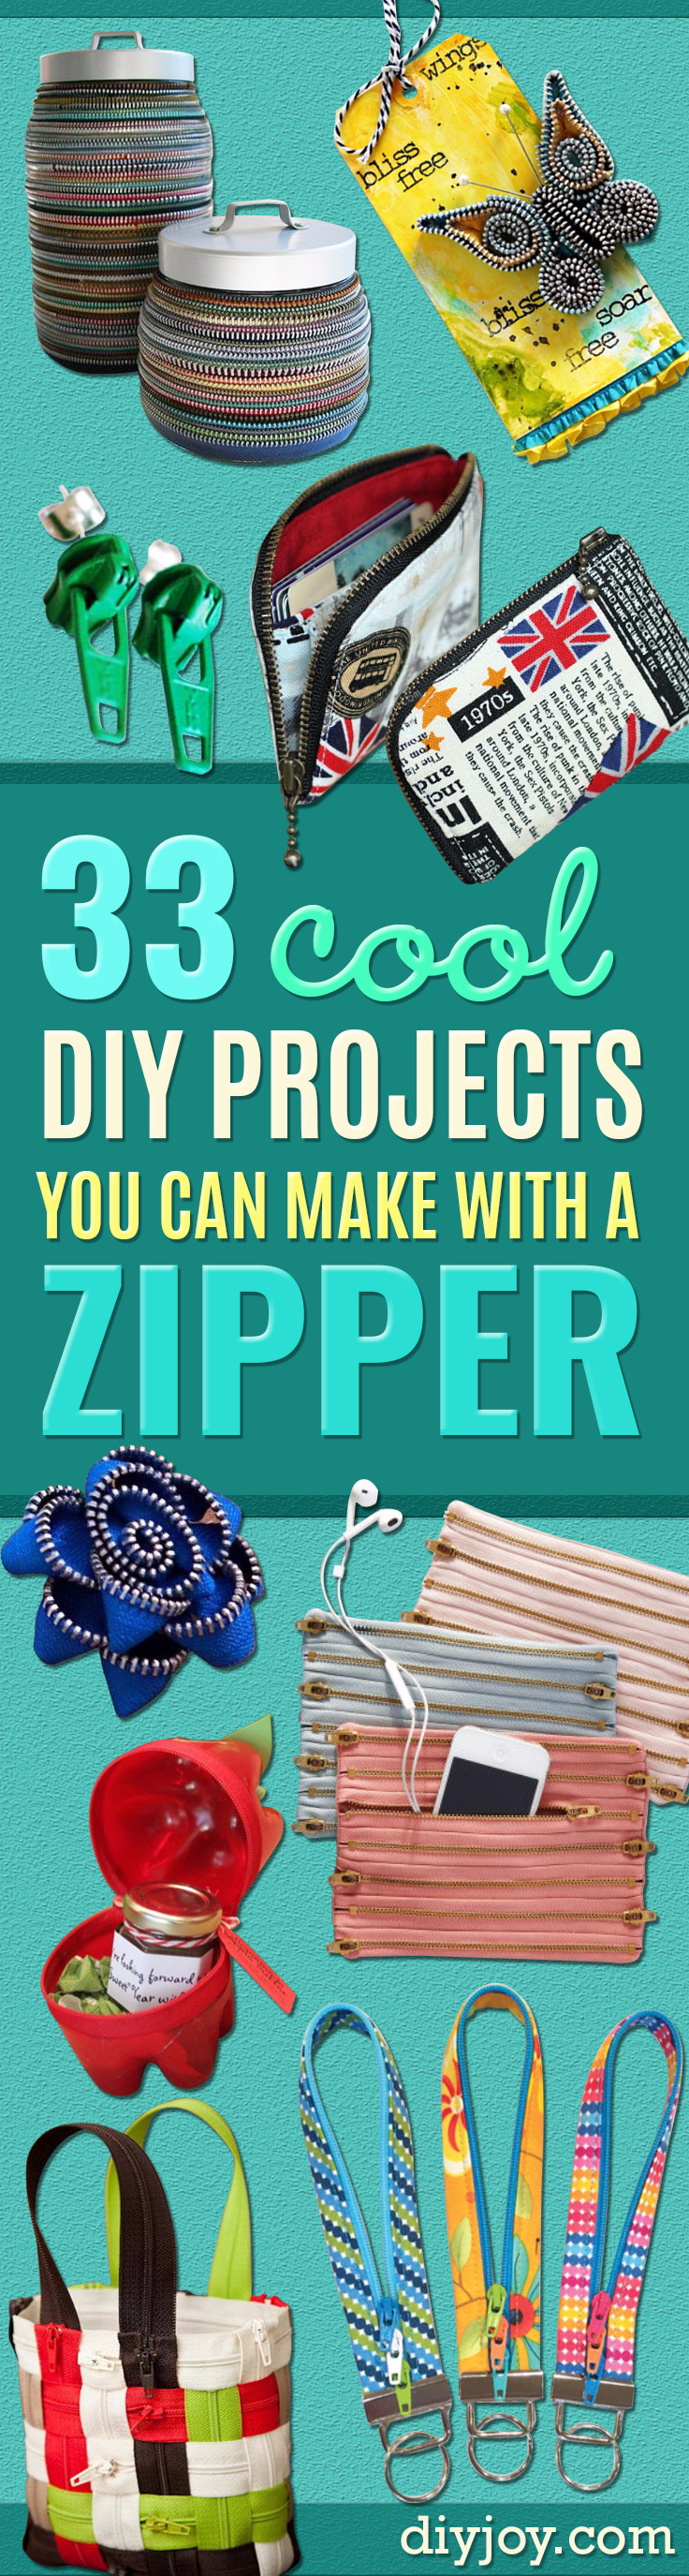 Creative DIY Projects With Zippers - Easy Crafts and Fashion Ideas With A Zipper - Jewelry, Home Decor, School Supplies and DIY Gift Ideas - Quick DIYs for Fun Weekend Projects #diyideas #crafts